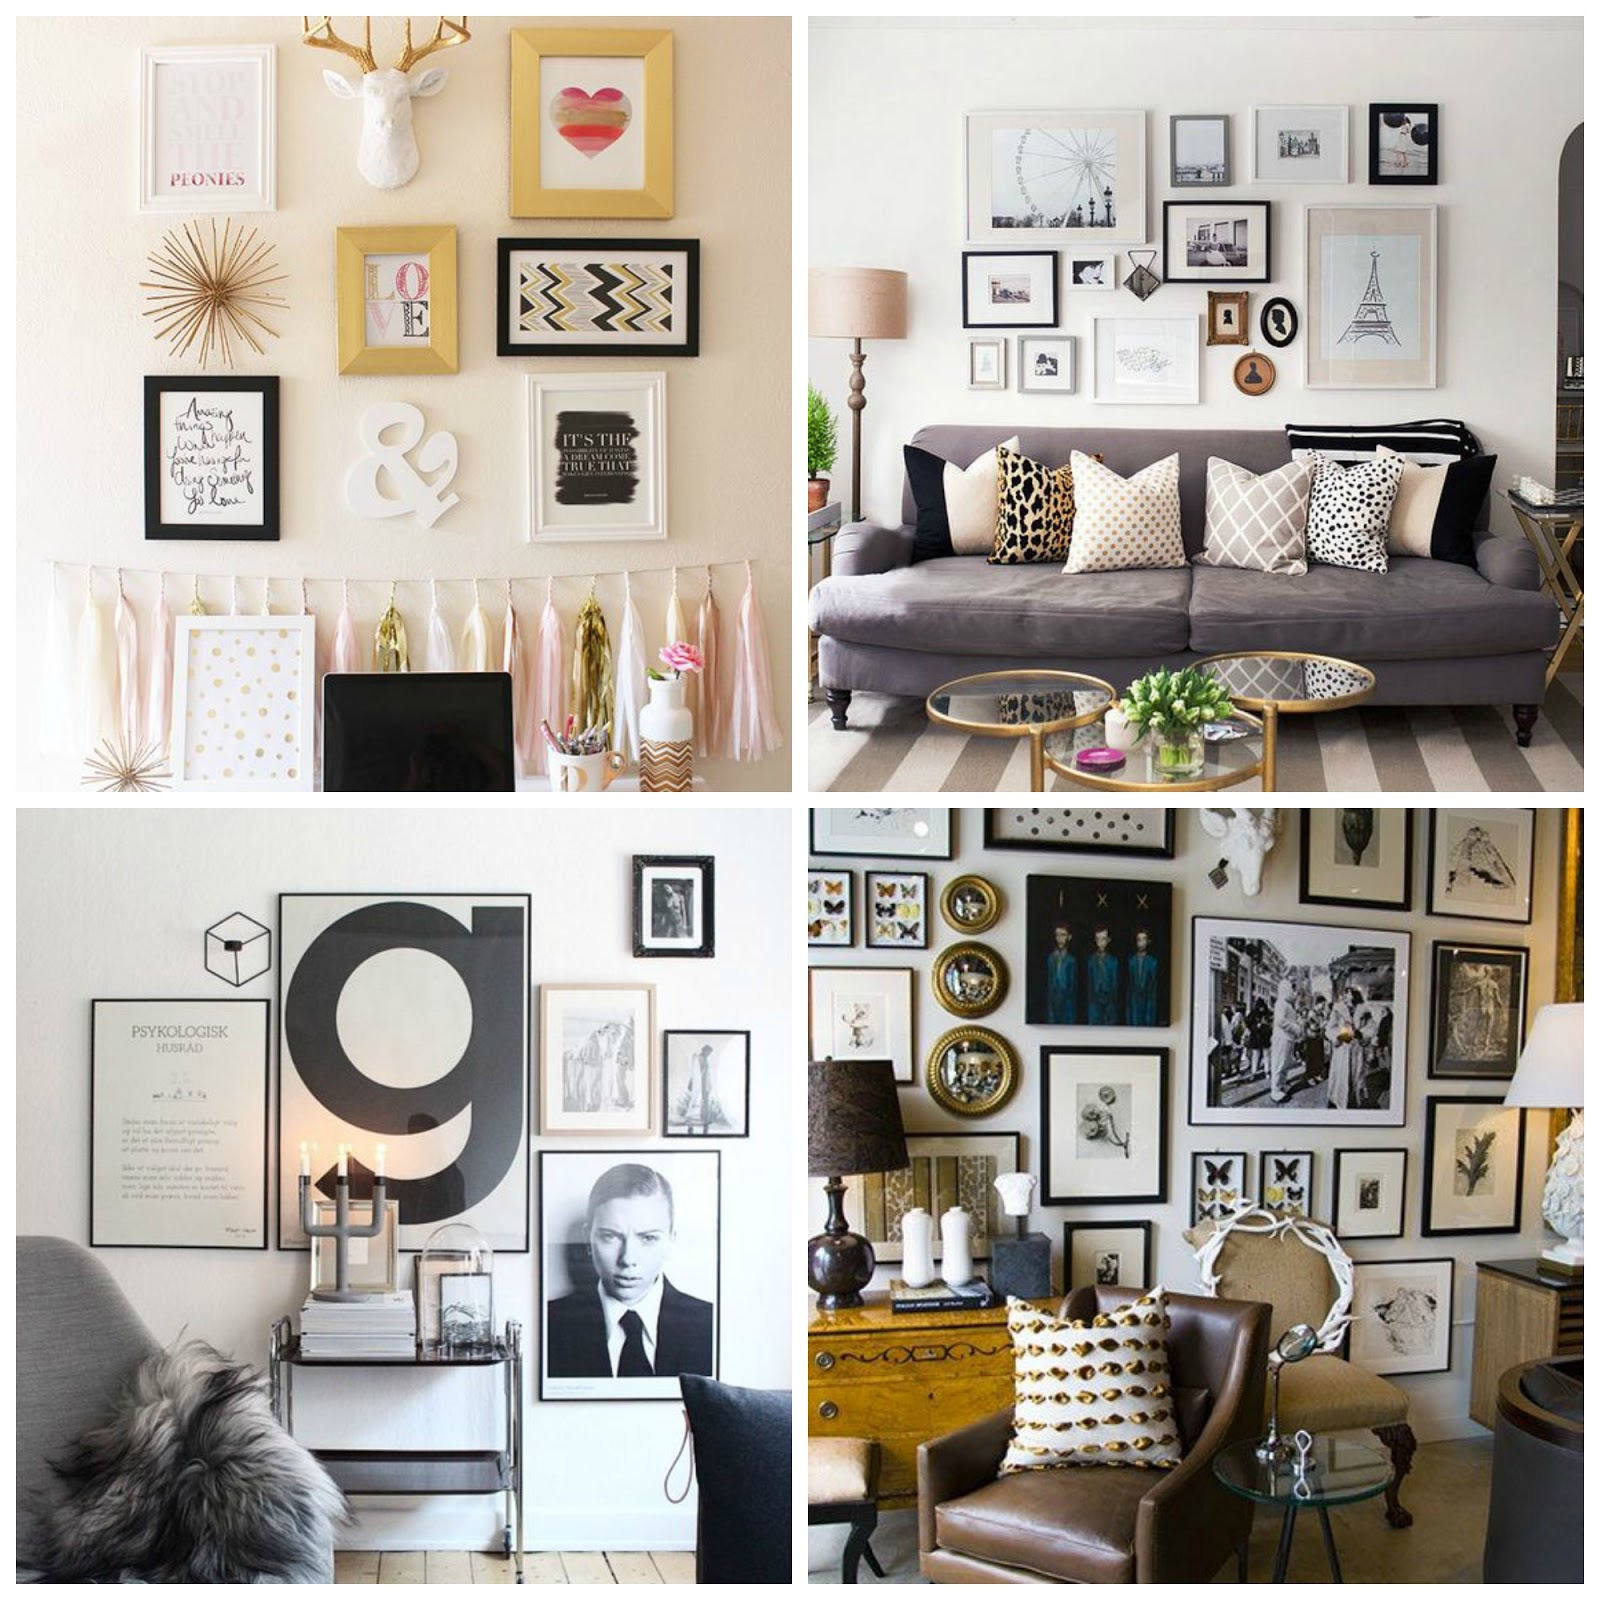 chic country girl diy home decor gallery wall beautiful wall decor